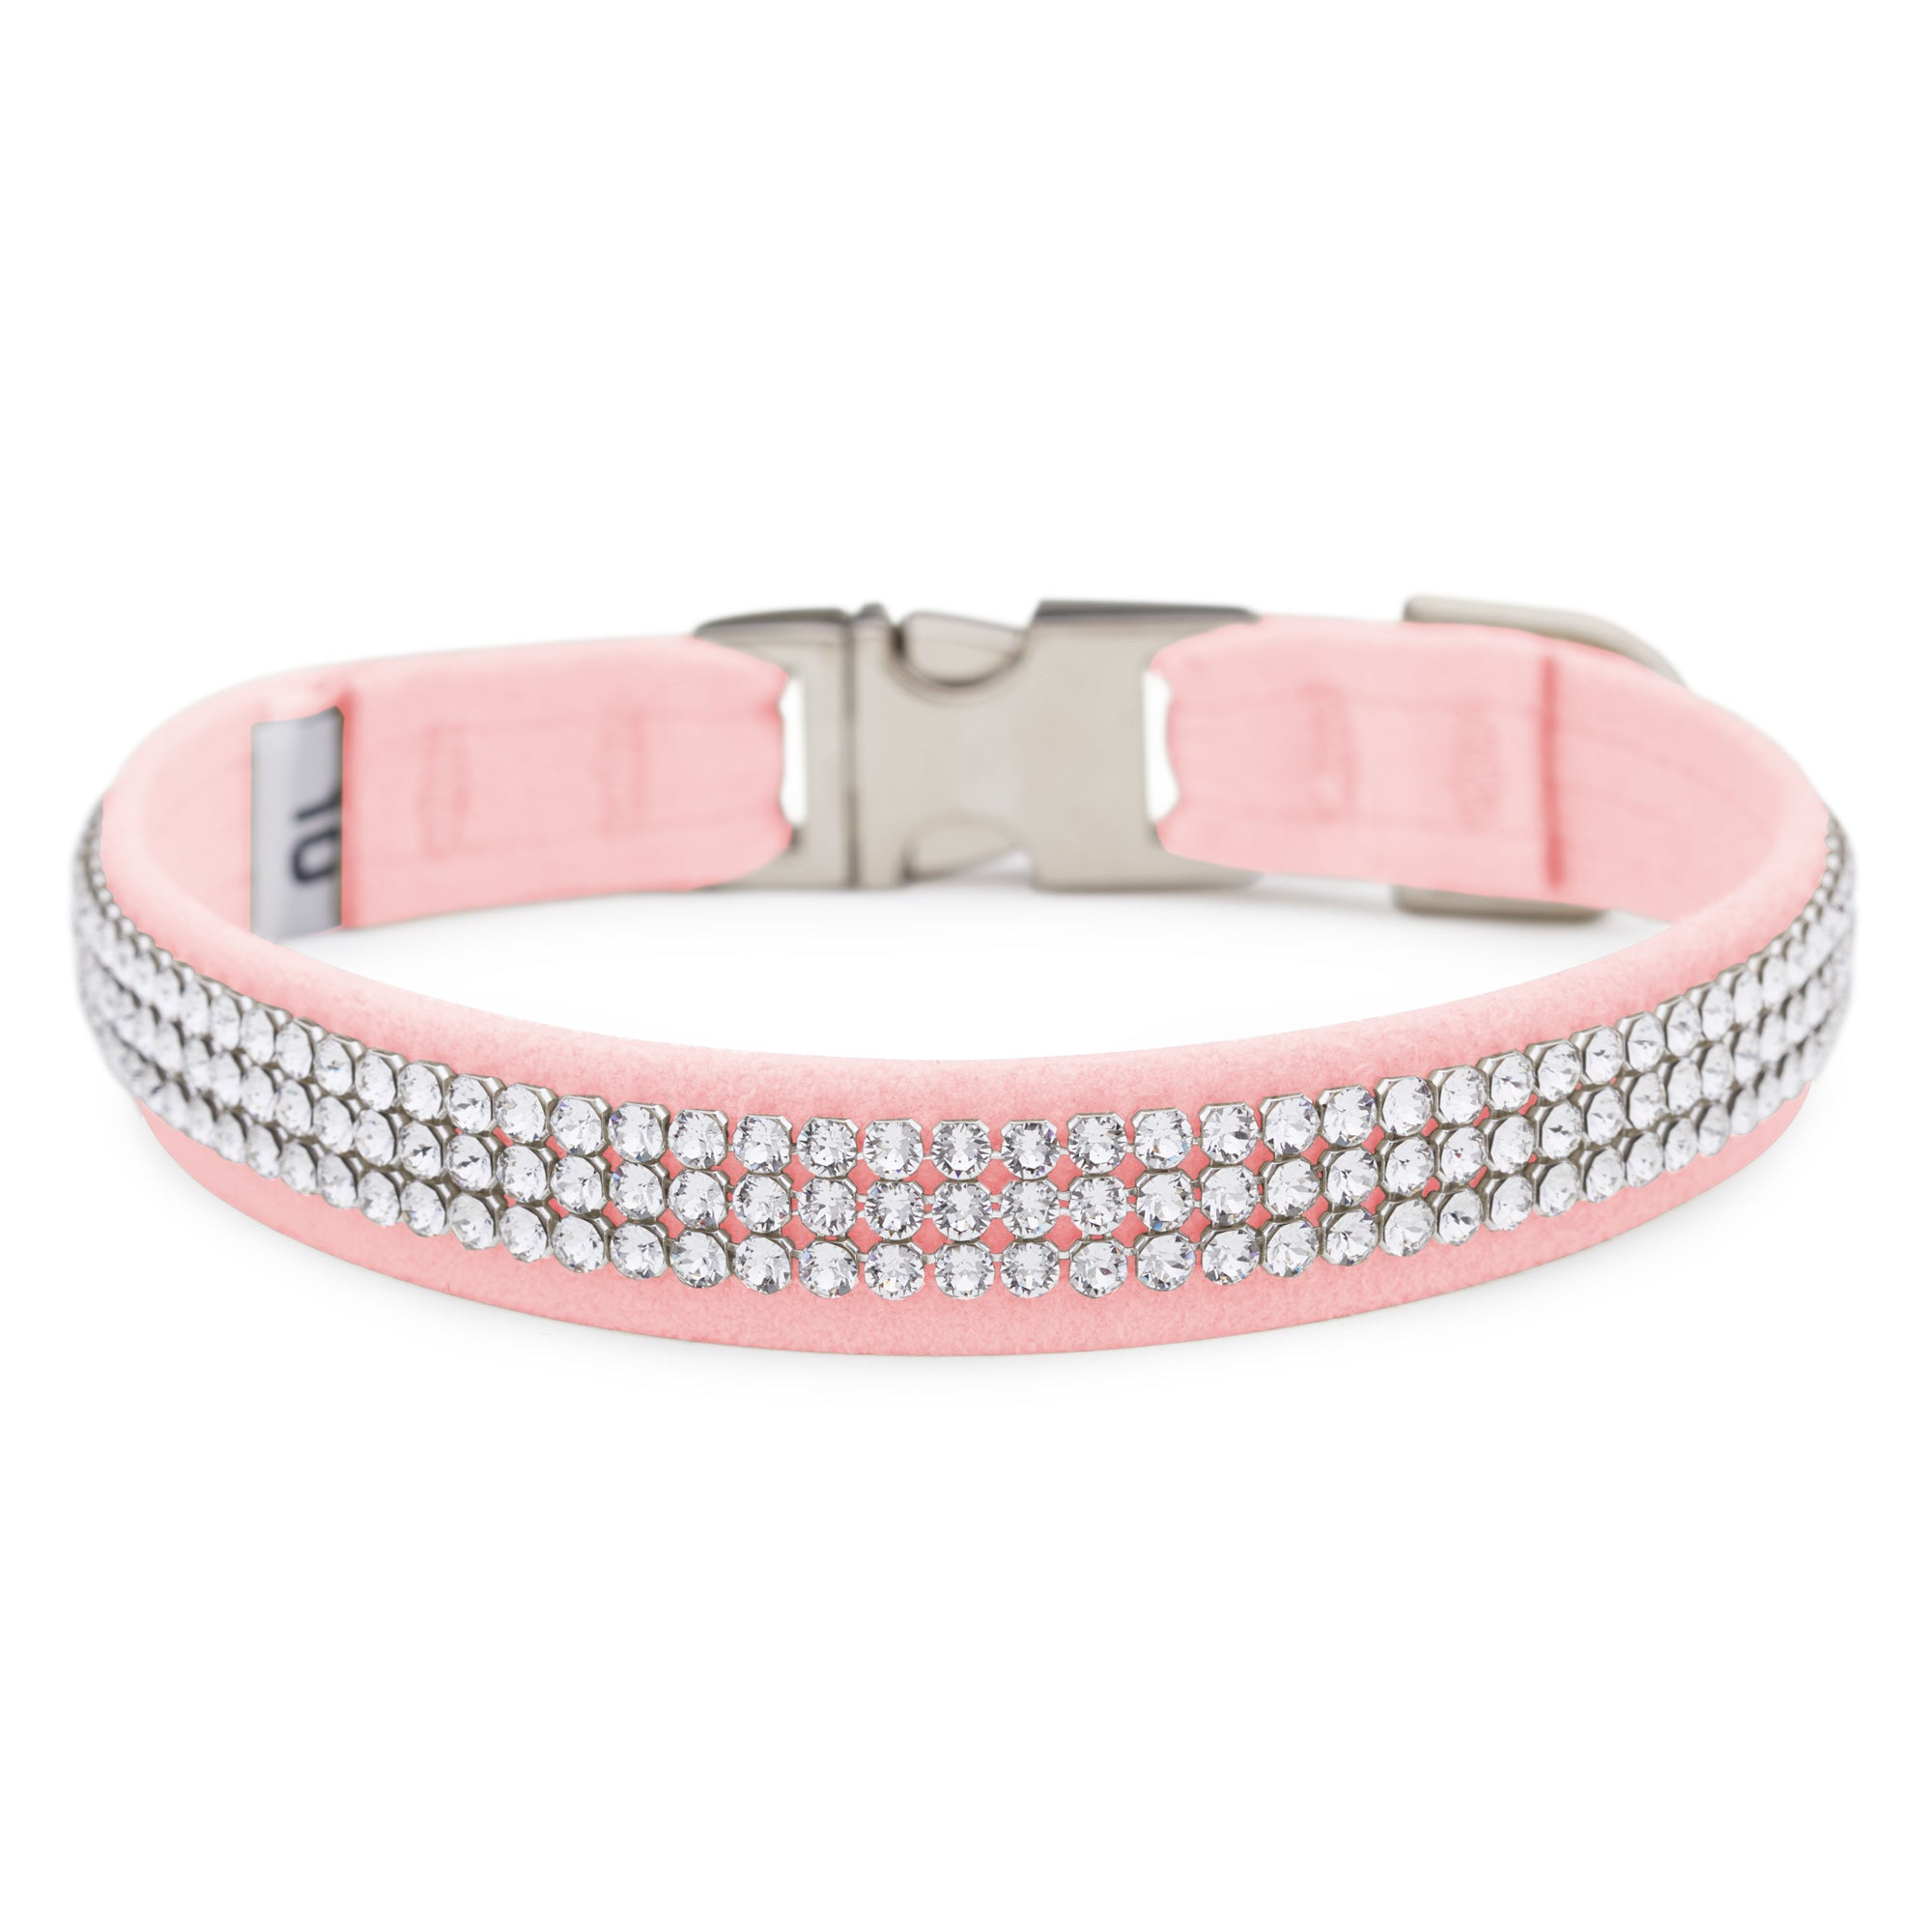 Puppy Pink 3 Row Giltmore Perfect Fit Collar